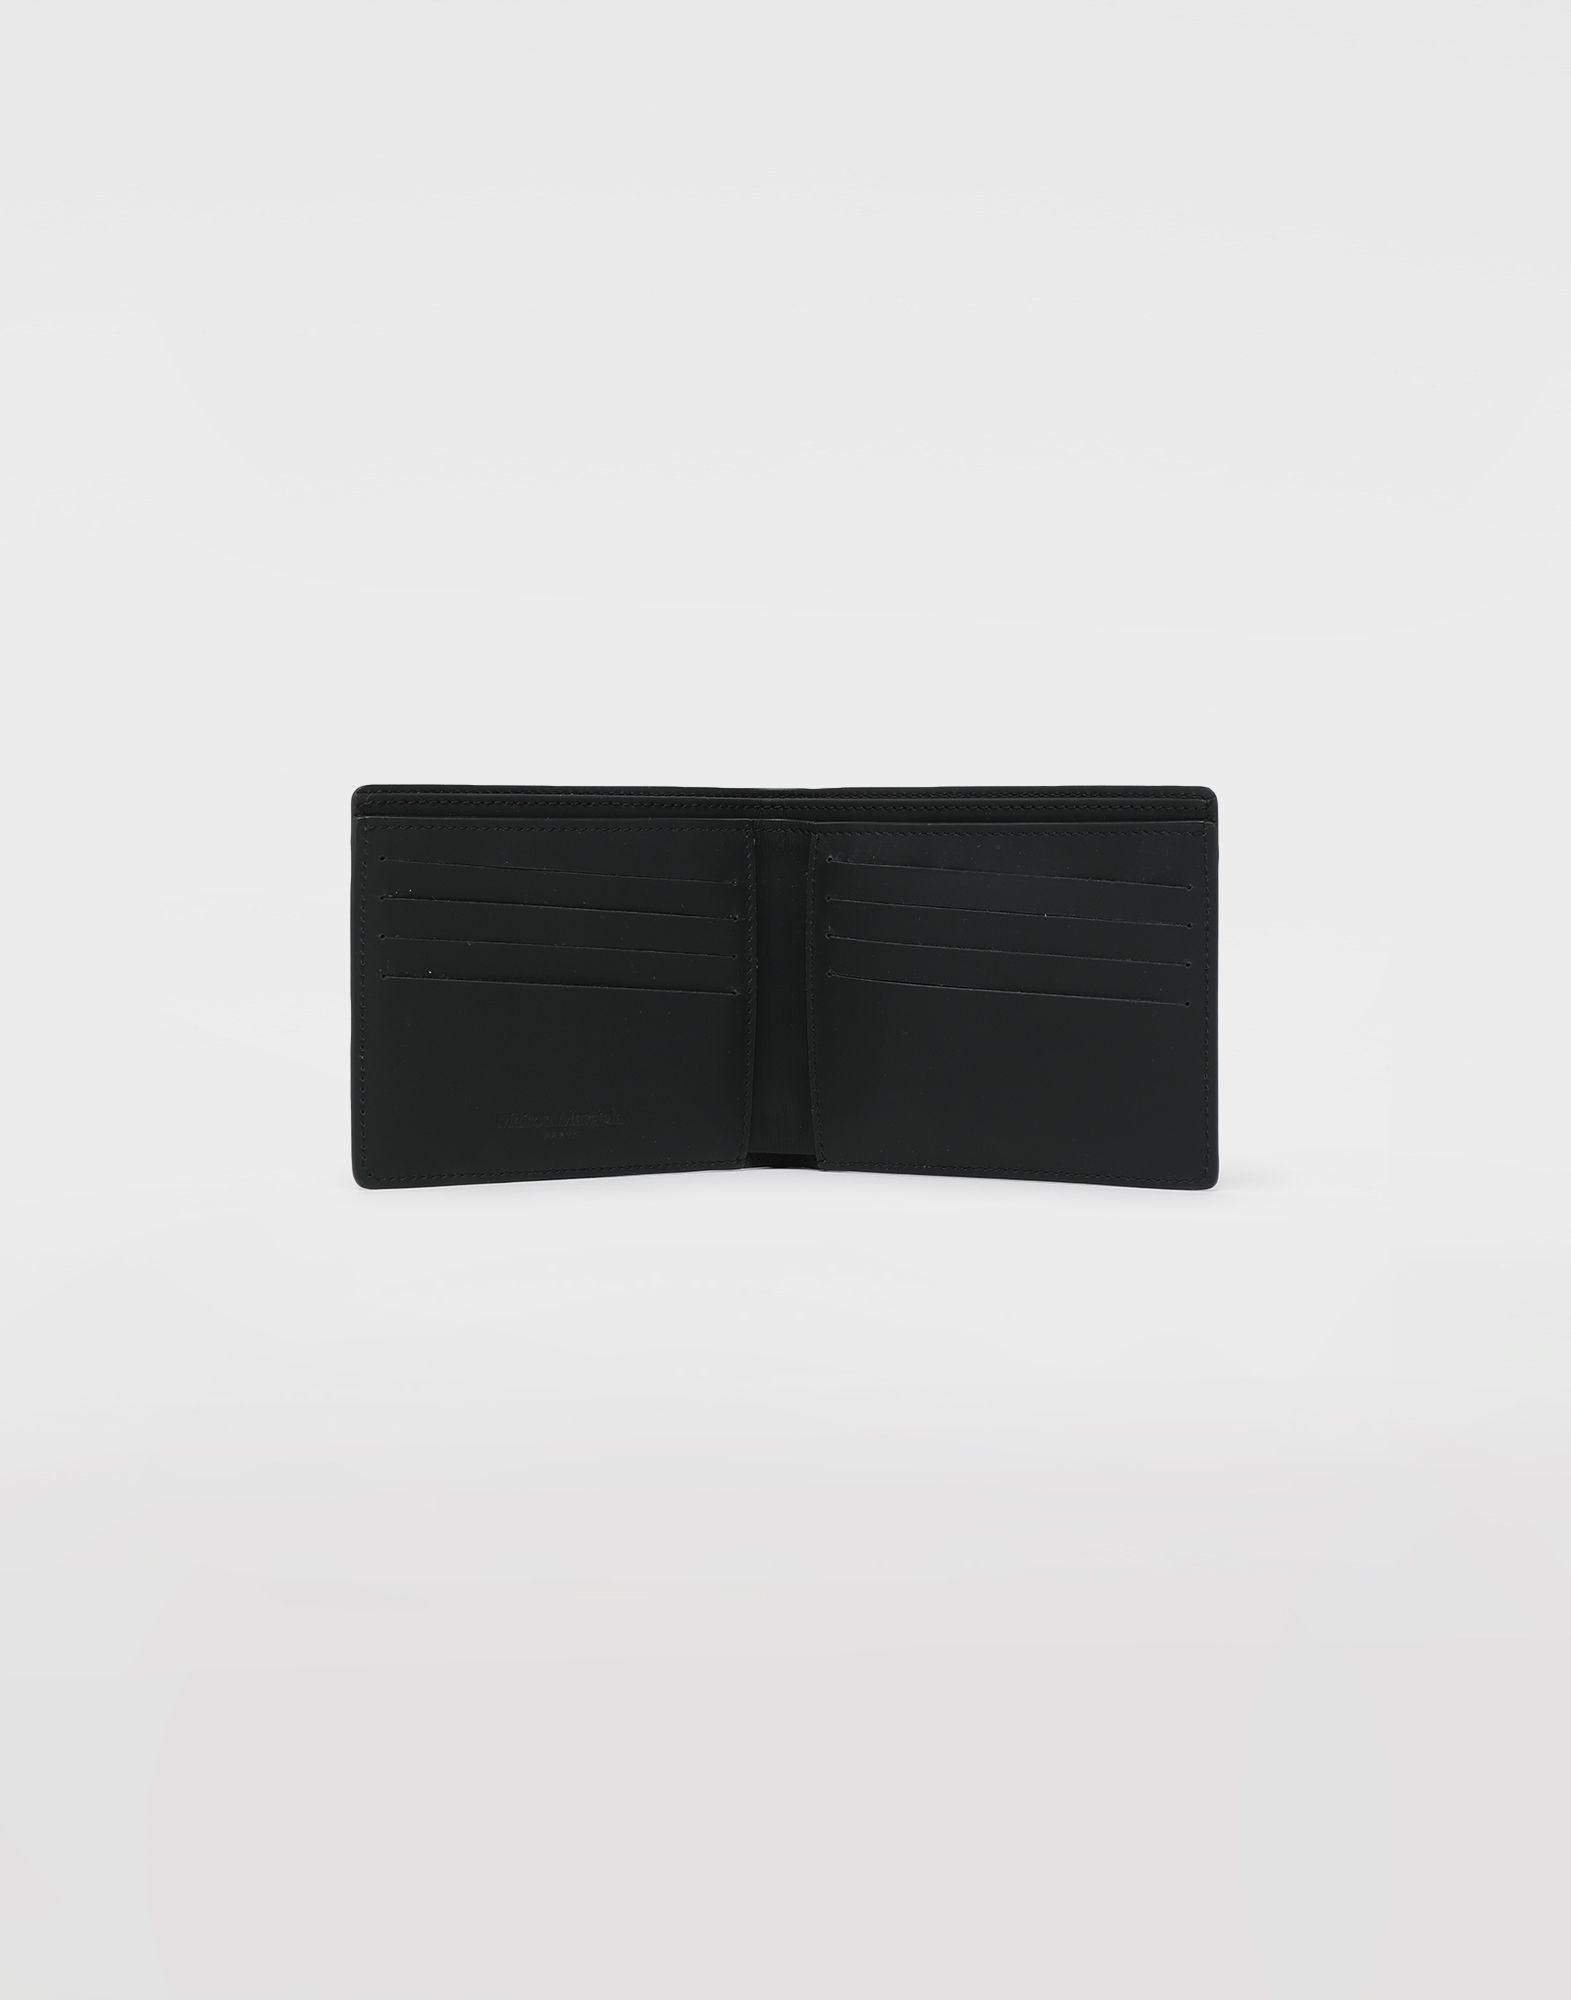 MAISON MARGIELA Metallic logo wallet Wallets Man d